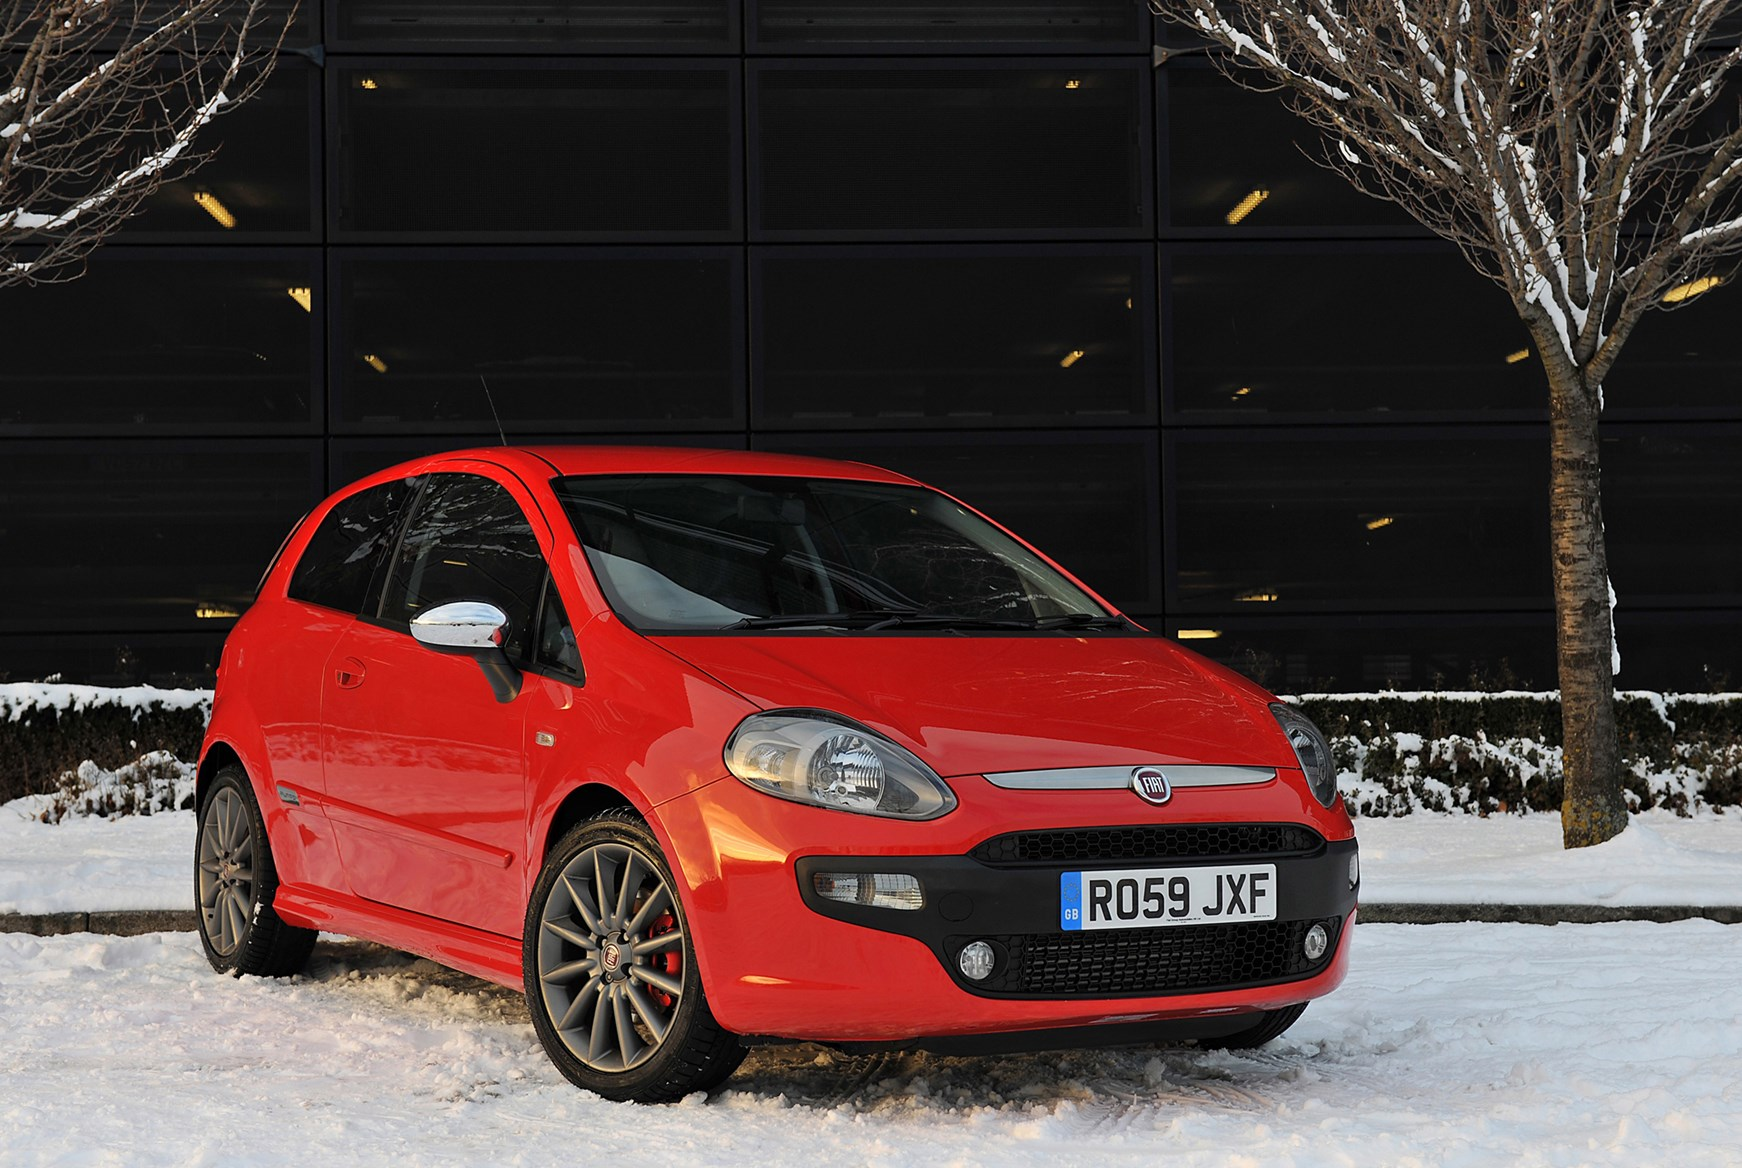 Used Fiat Punto Evo Hatchback (2010 - 2012) Review | Parkers